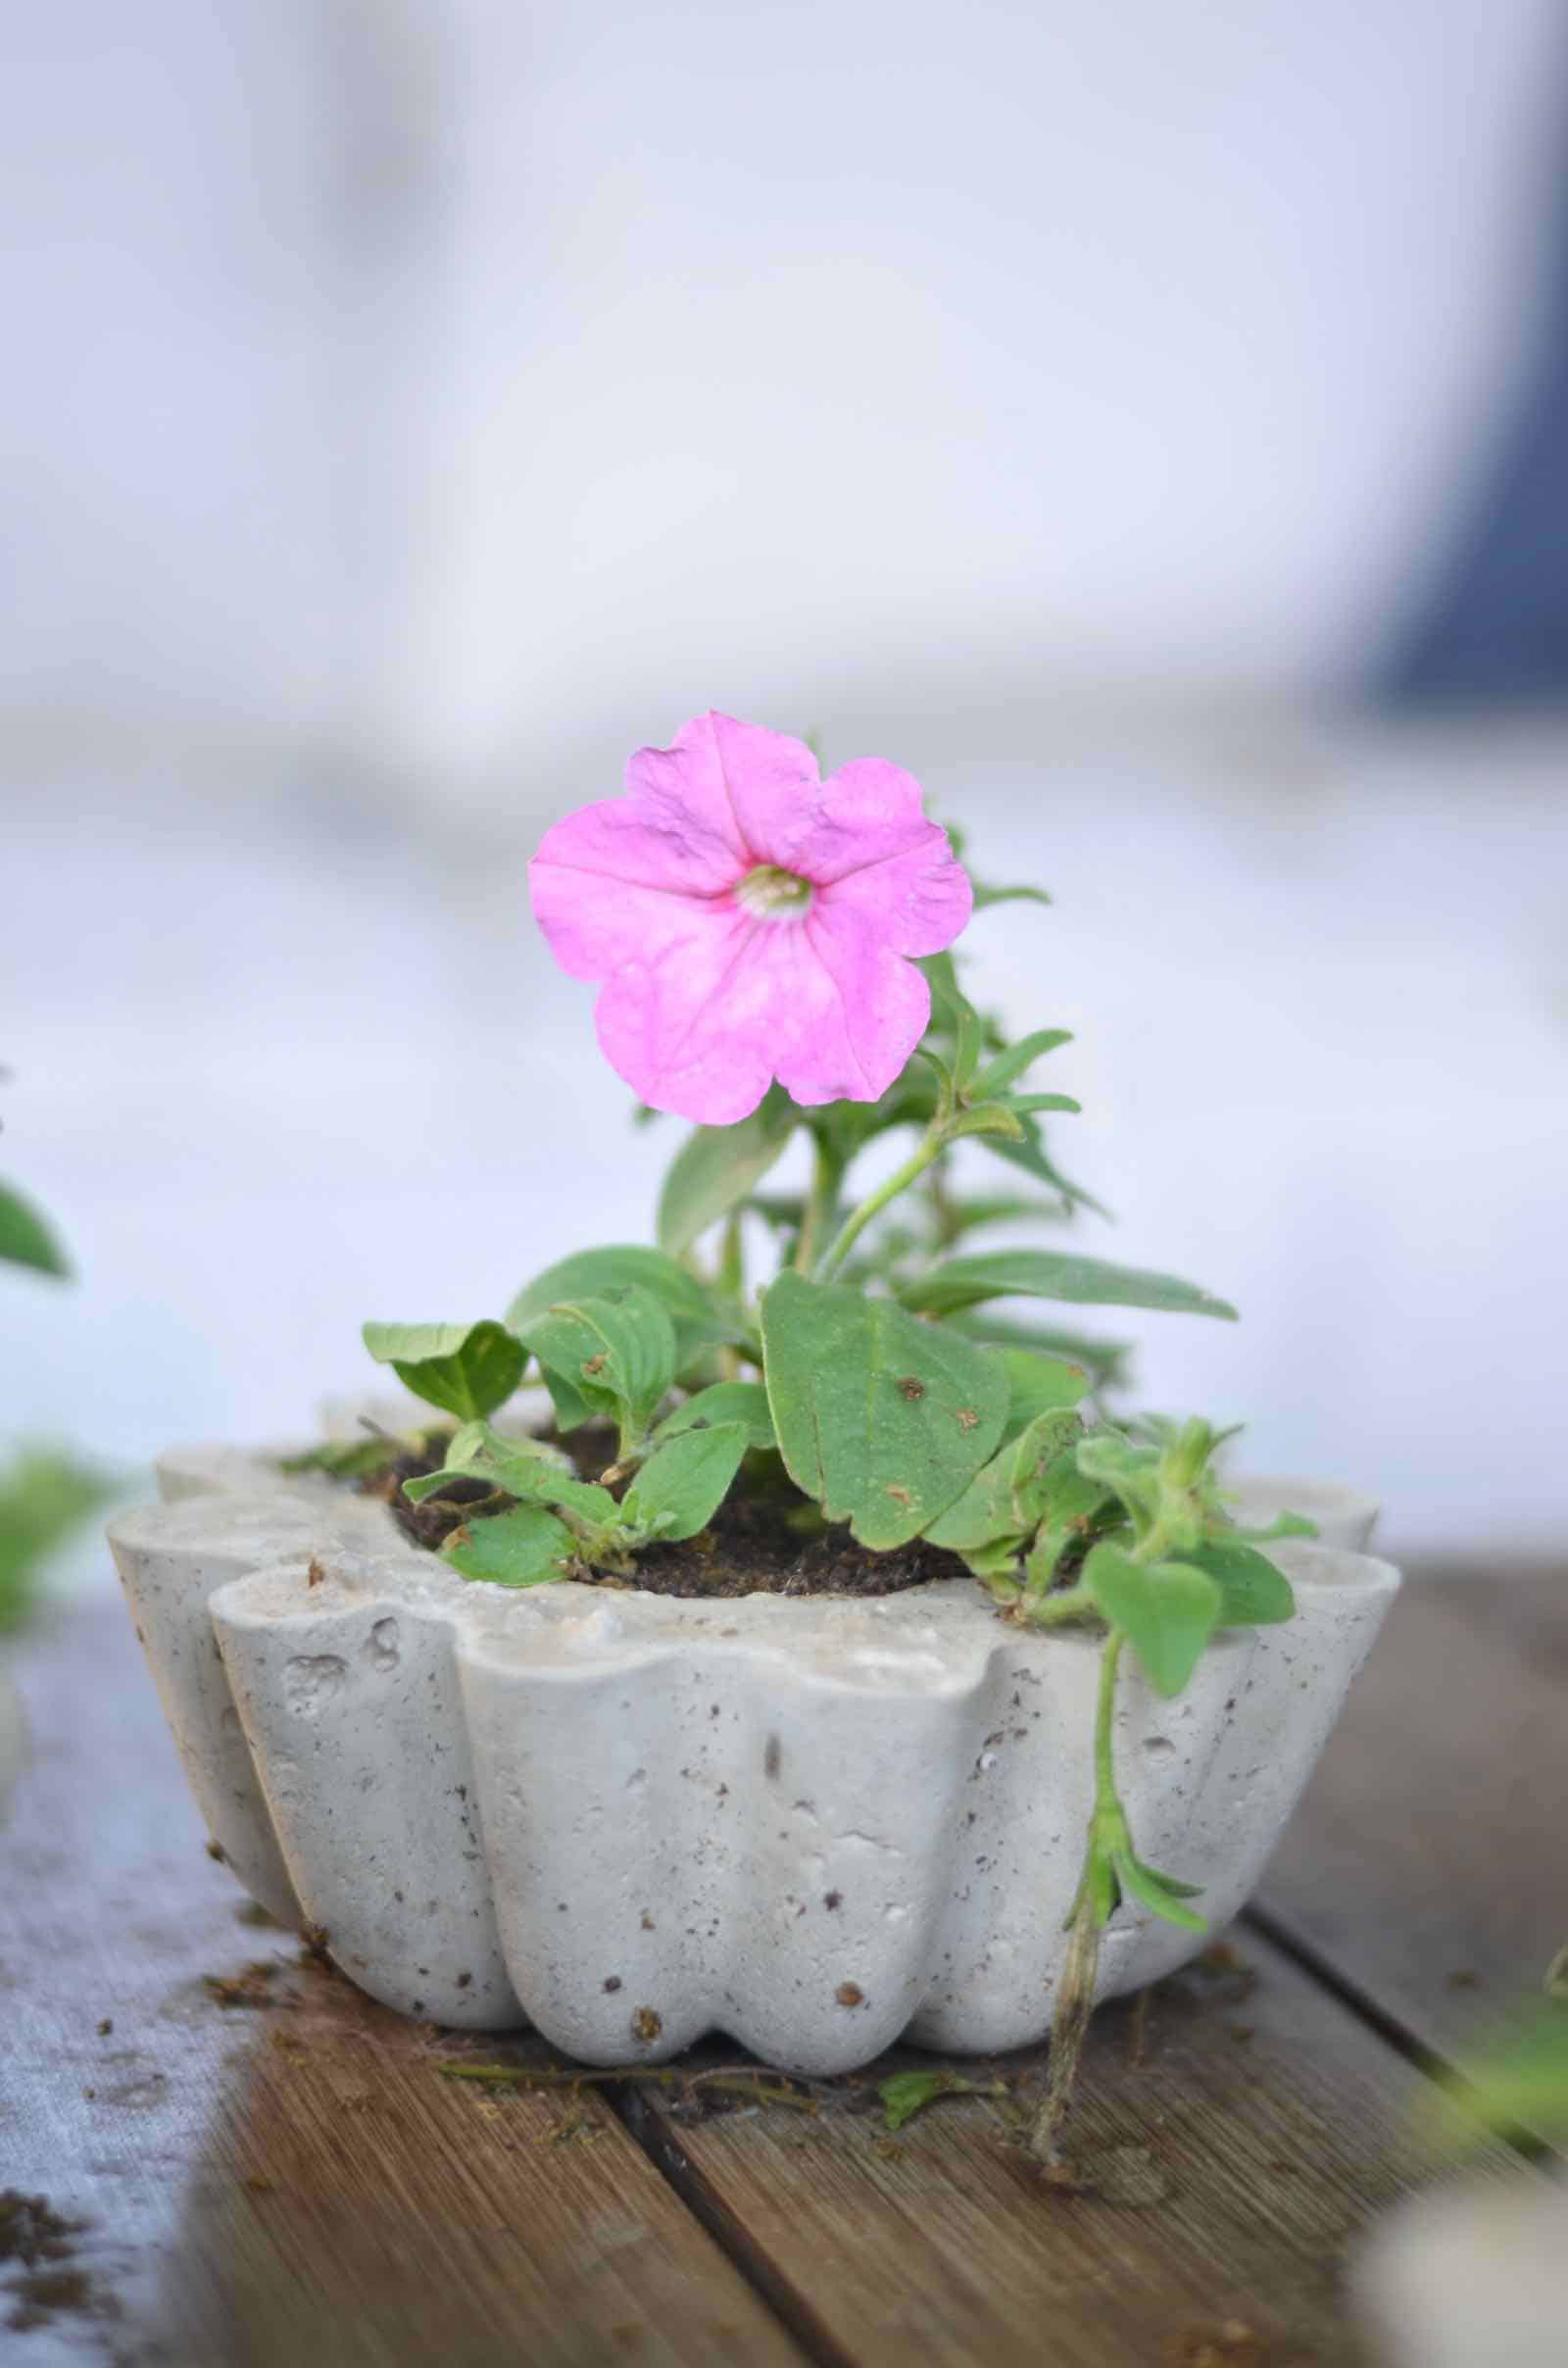 Make these amazing DIY concrete planters in under an hour for $5.